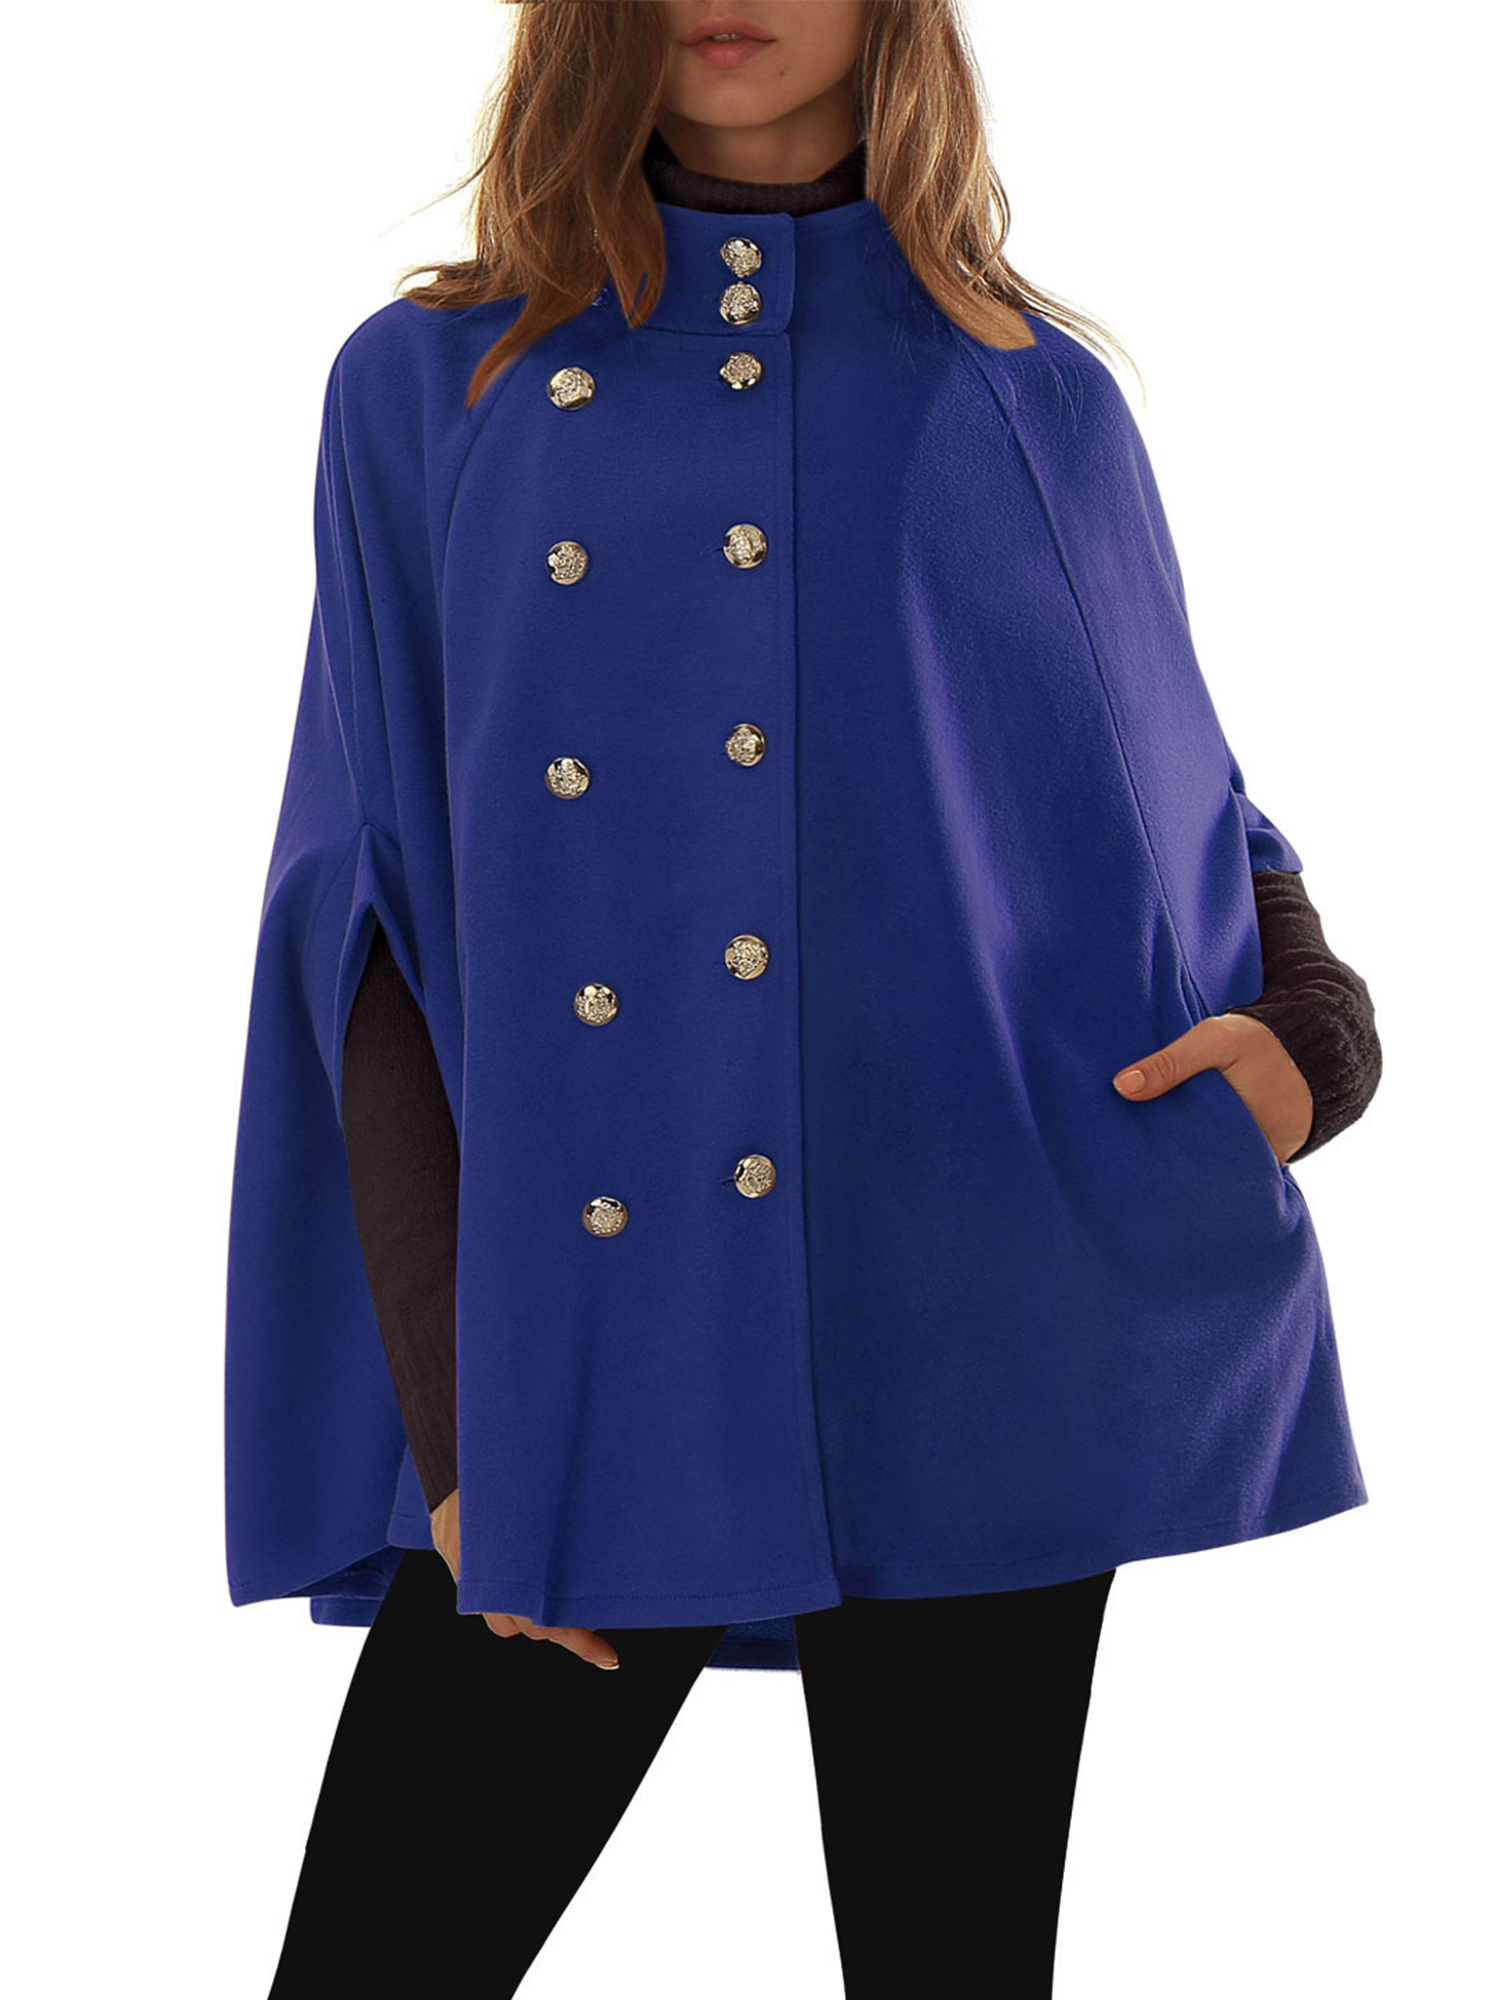 Women's Stand Collar Double Breasted Worsted Poncho Coat by Unique-Bargains